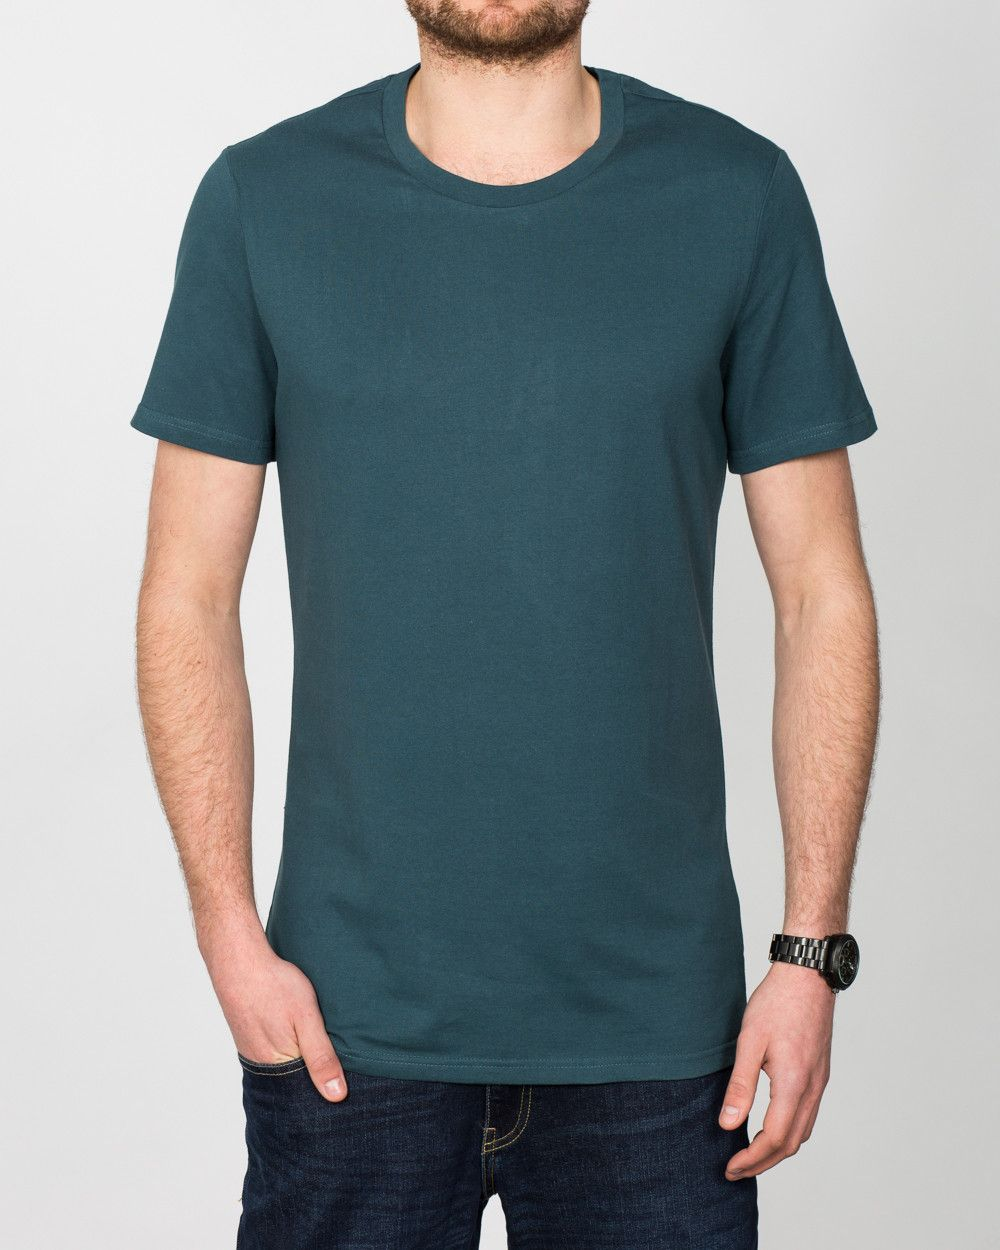 a51cd60813e1 2t Tall T-Shirt (petrol) | Extra Long Tall Mens Clothing | Suits | Tall  Mens Jeans | Shirts | Size 13-18 Shoes #tallmen #fashion